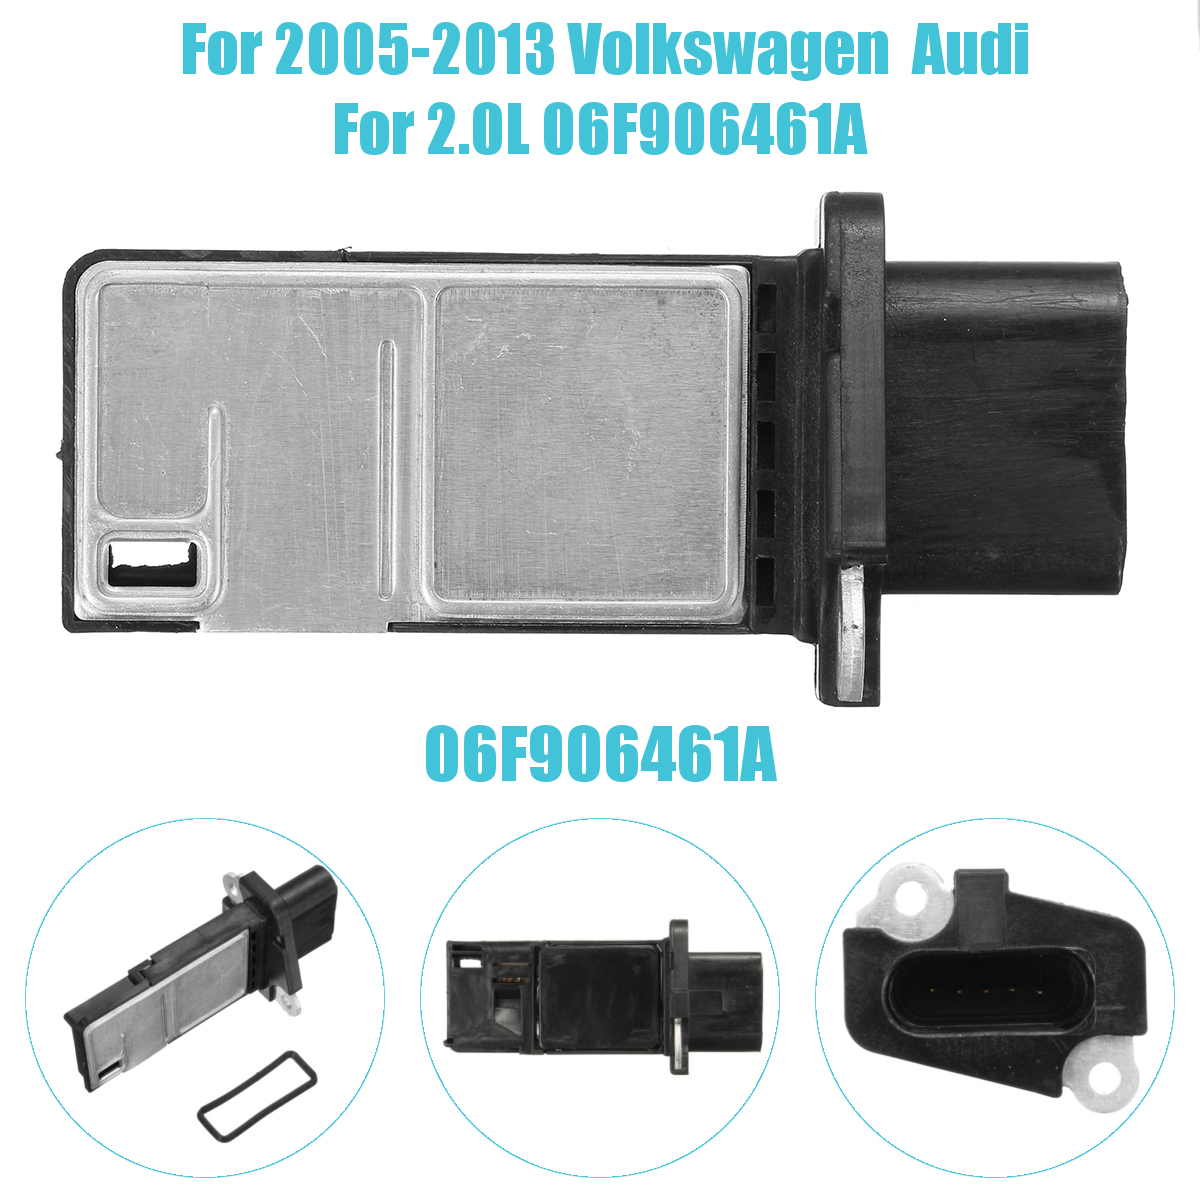 Mass Airflow Sensor Meter MAF For 2005-2013 Vw and AU DI 2.0L 06F906461A